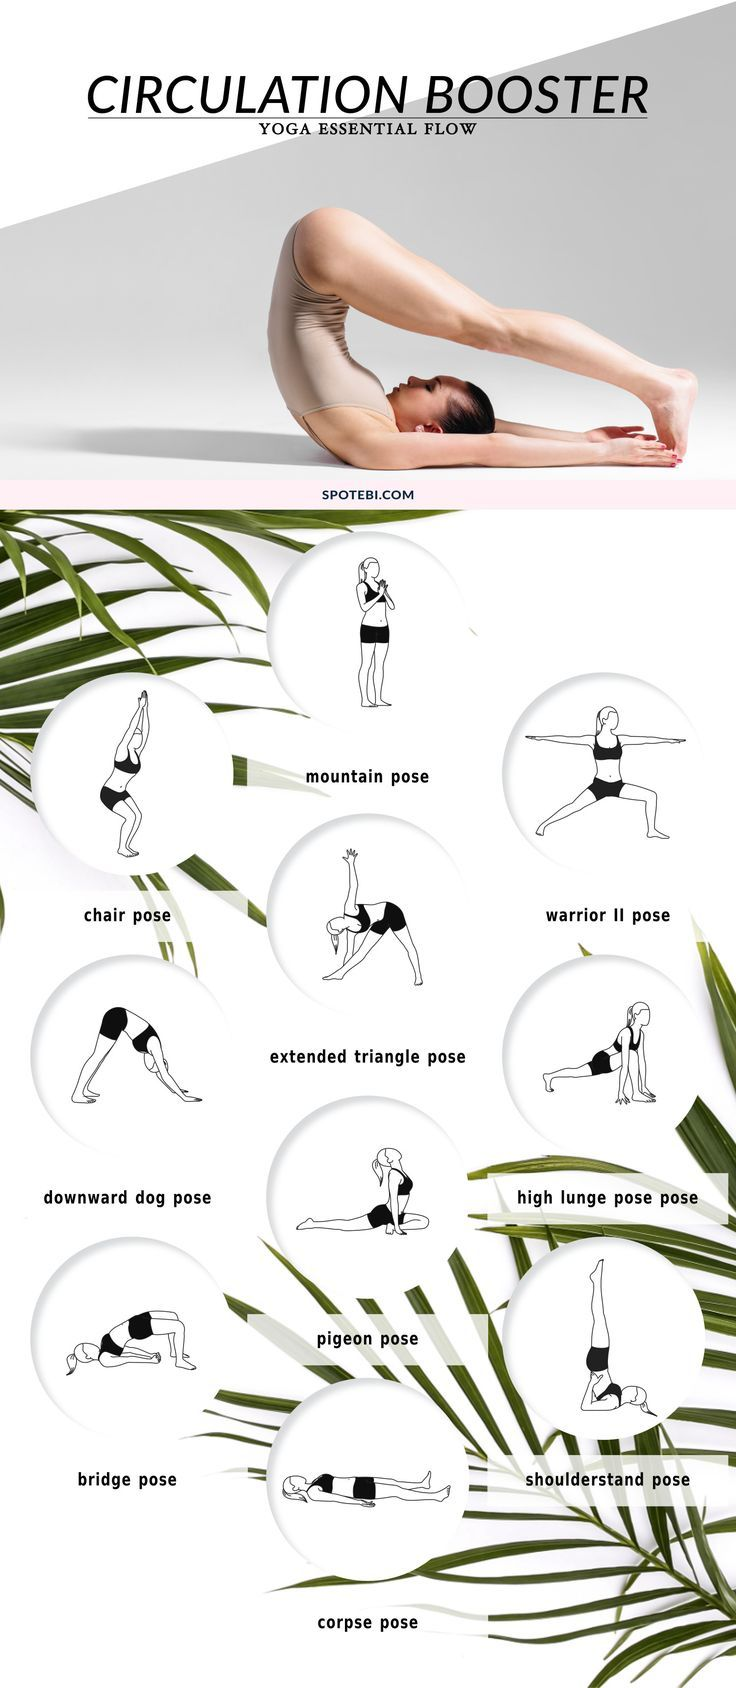 CIRCULATION BOOSTER YOGA ESSENTIAL FLOW